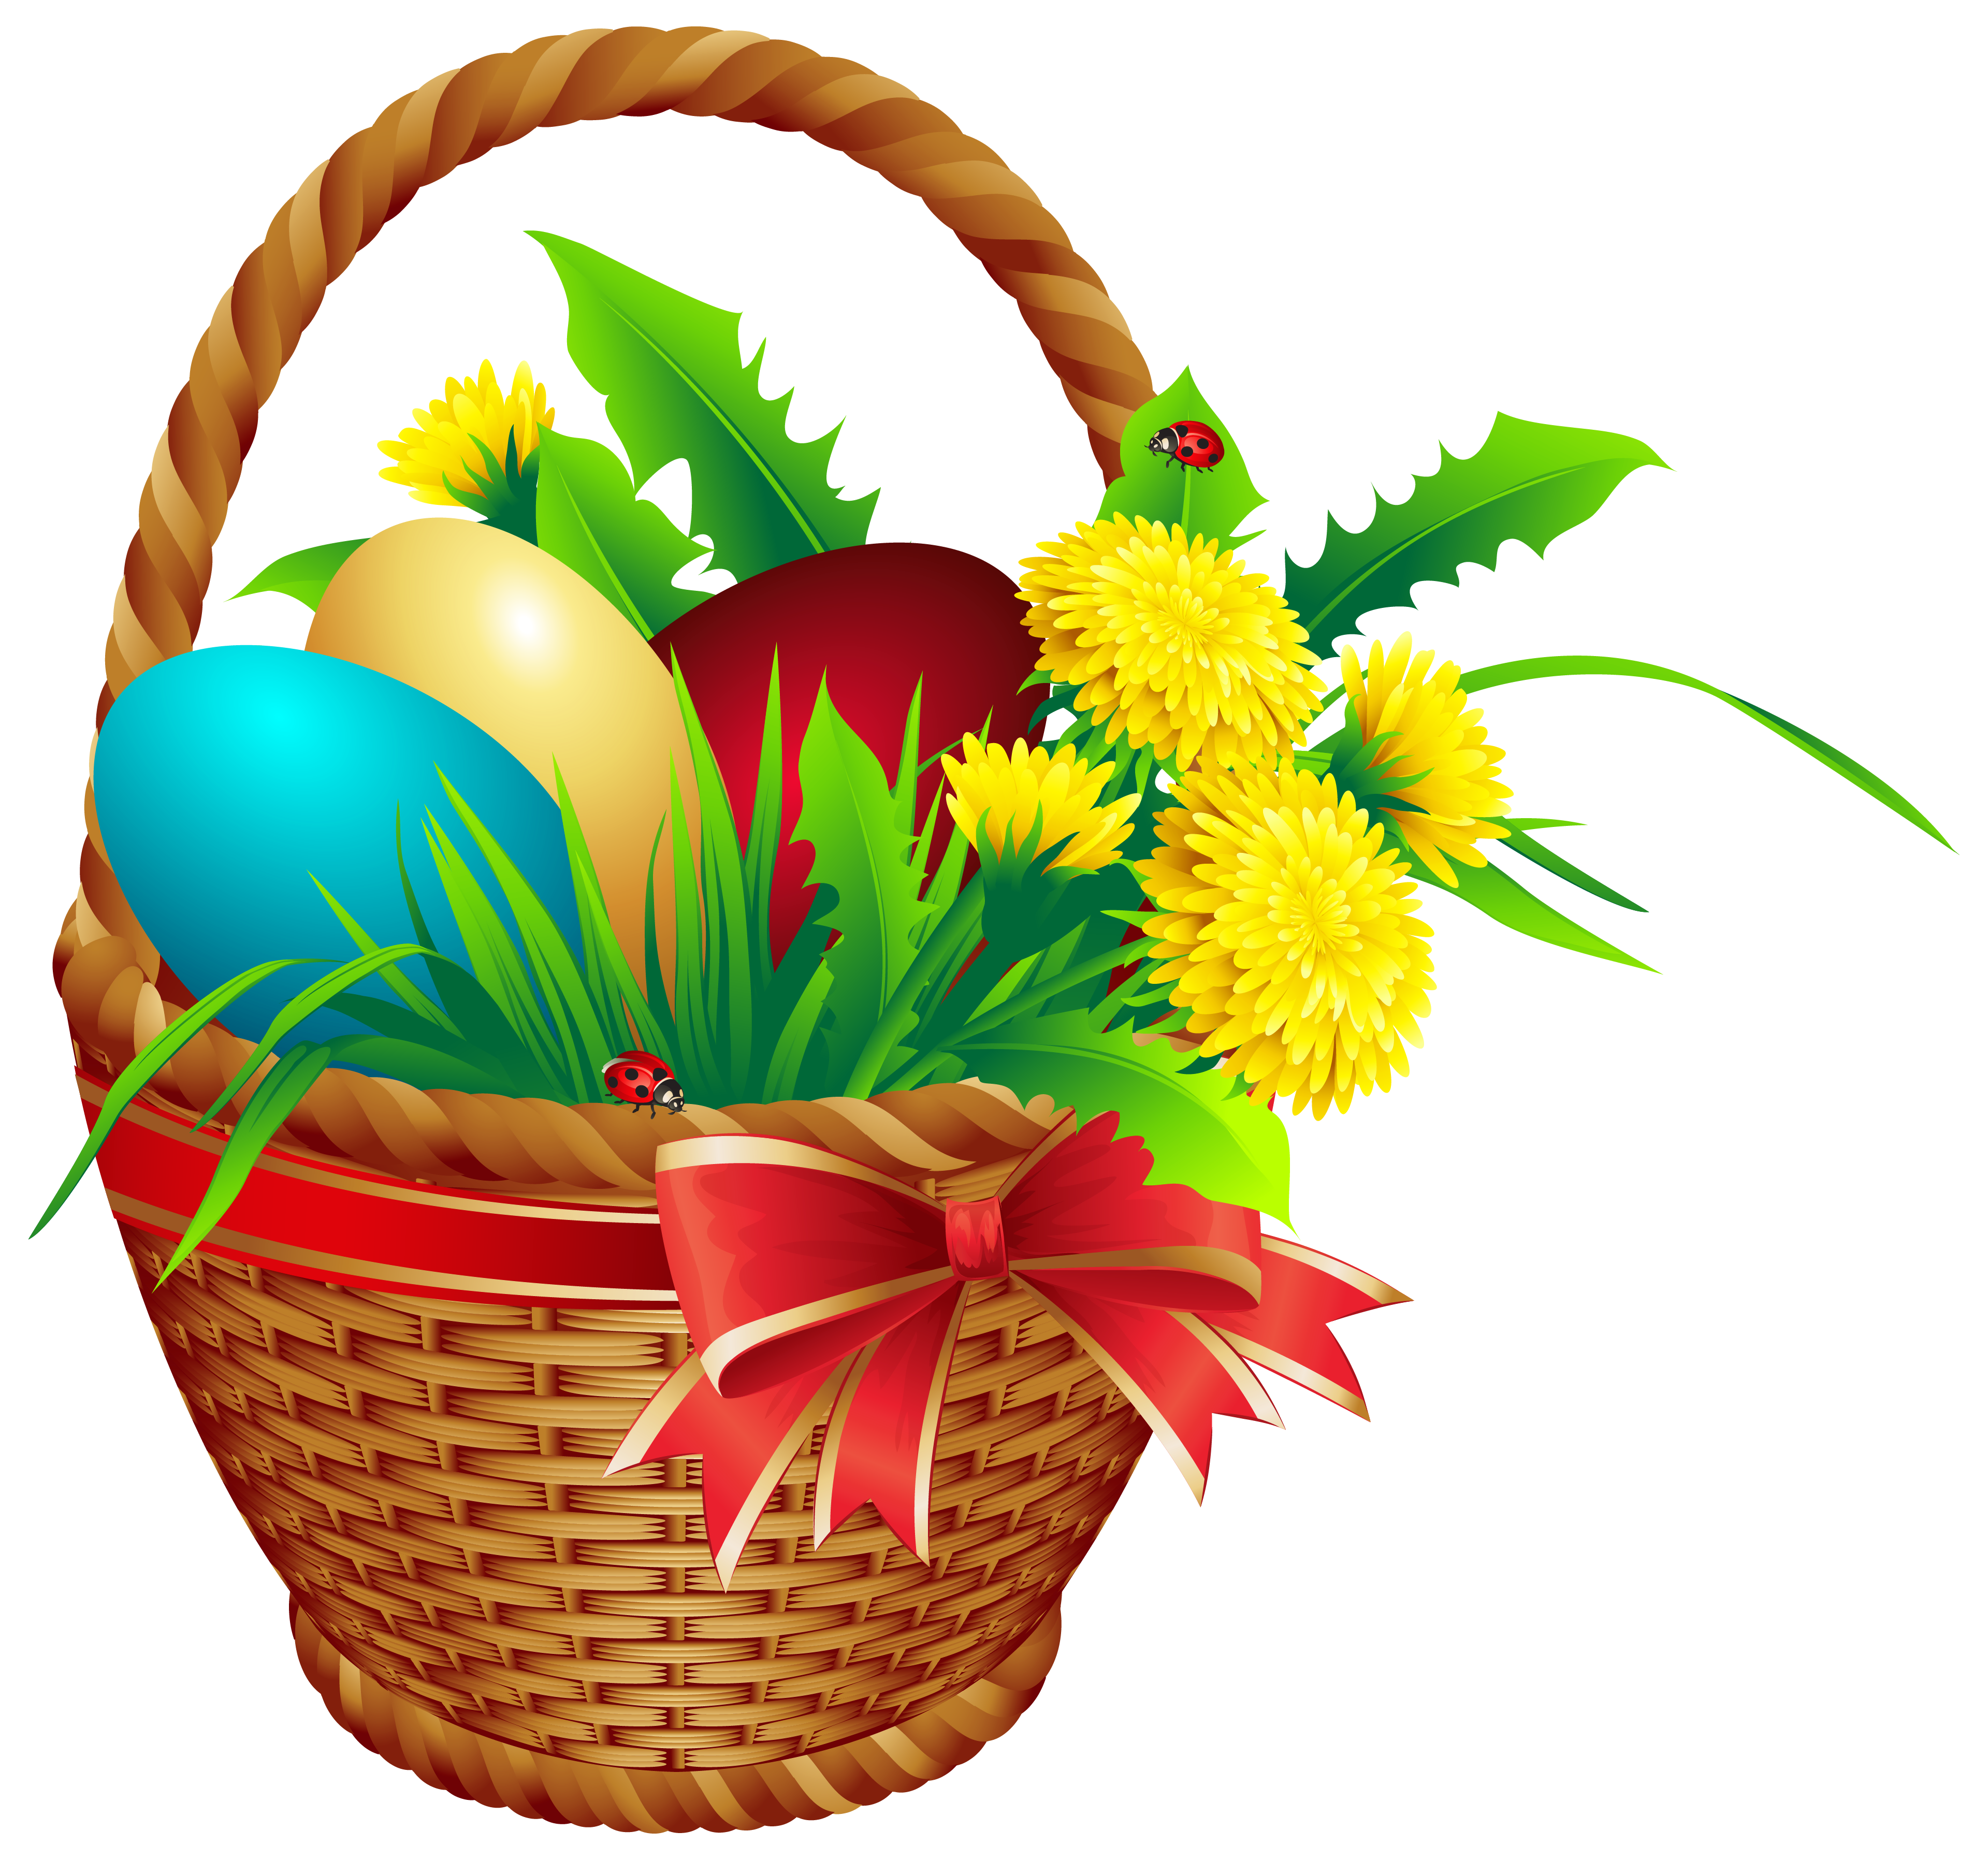 Clipart of easter basket picture library Easter Basket PNG Clip Art Image picture library